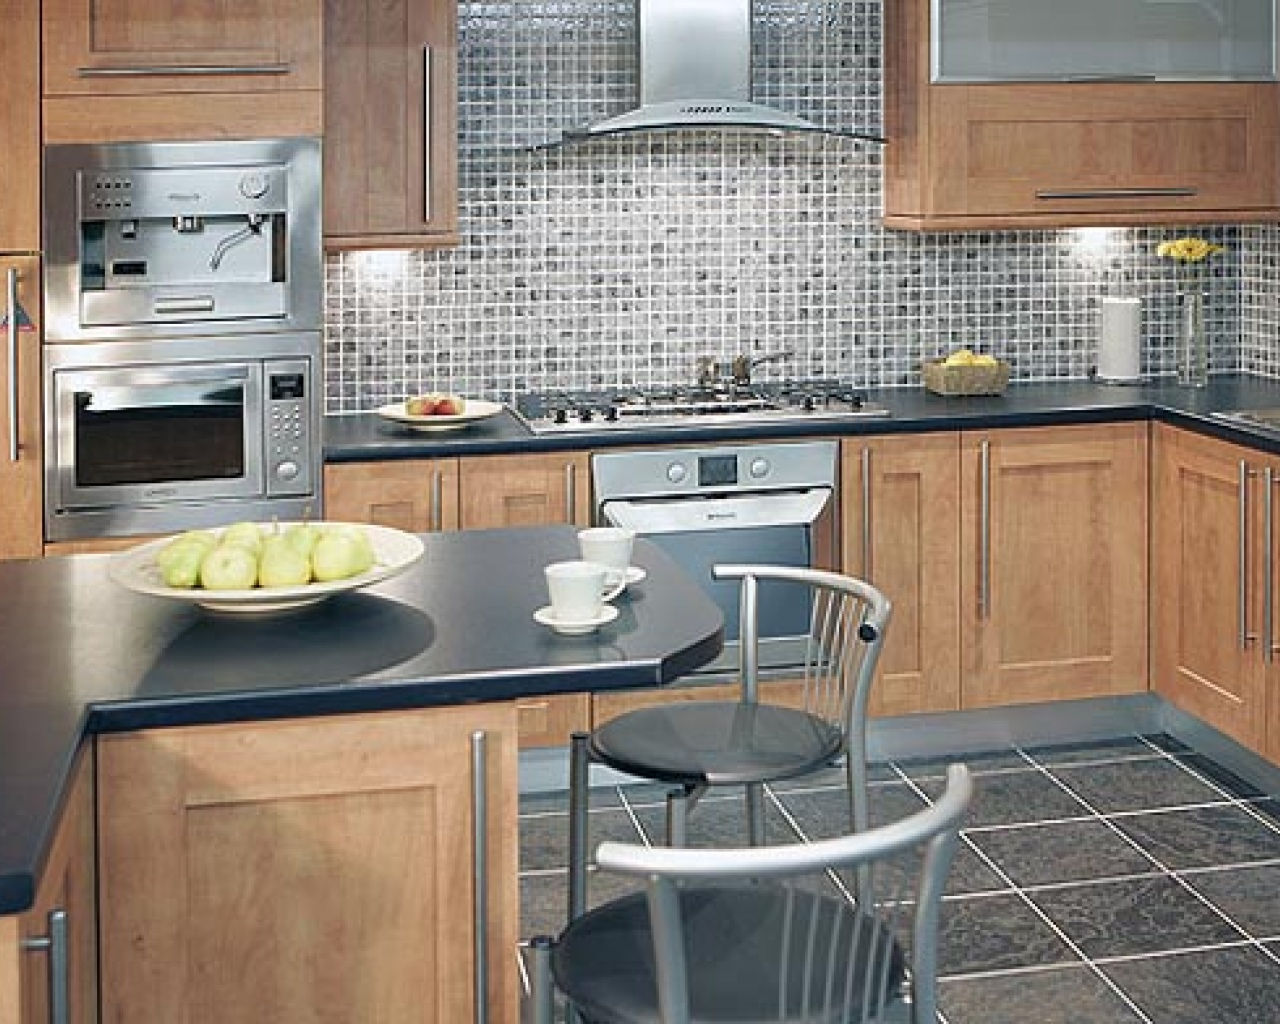 Download Wallpaper For Kitchen Walls Gallery